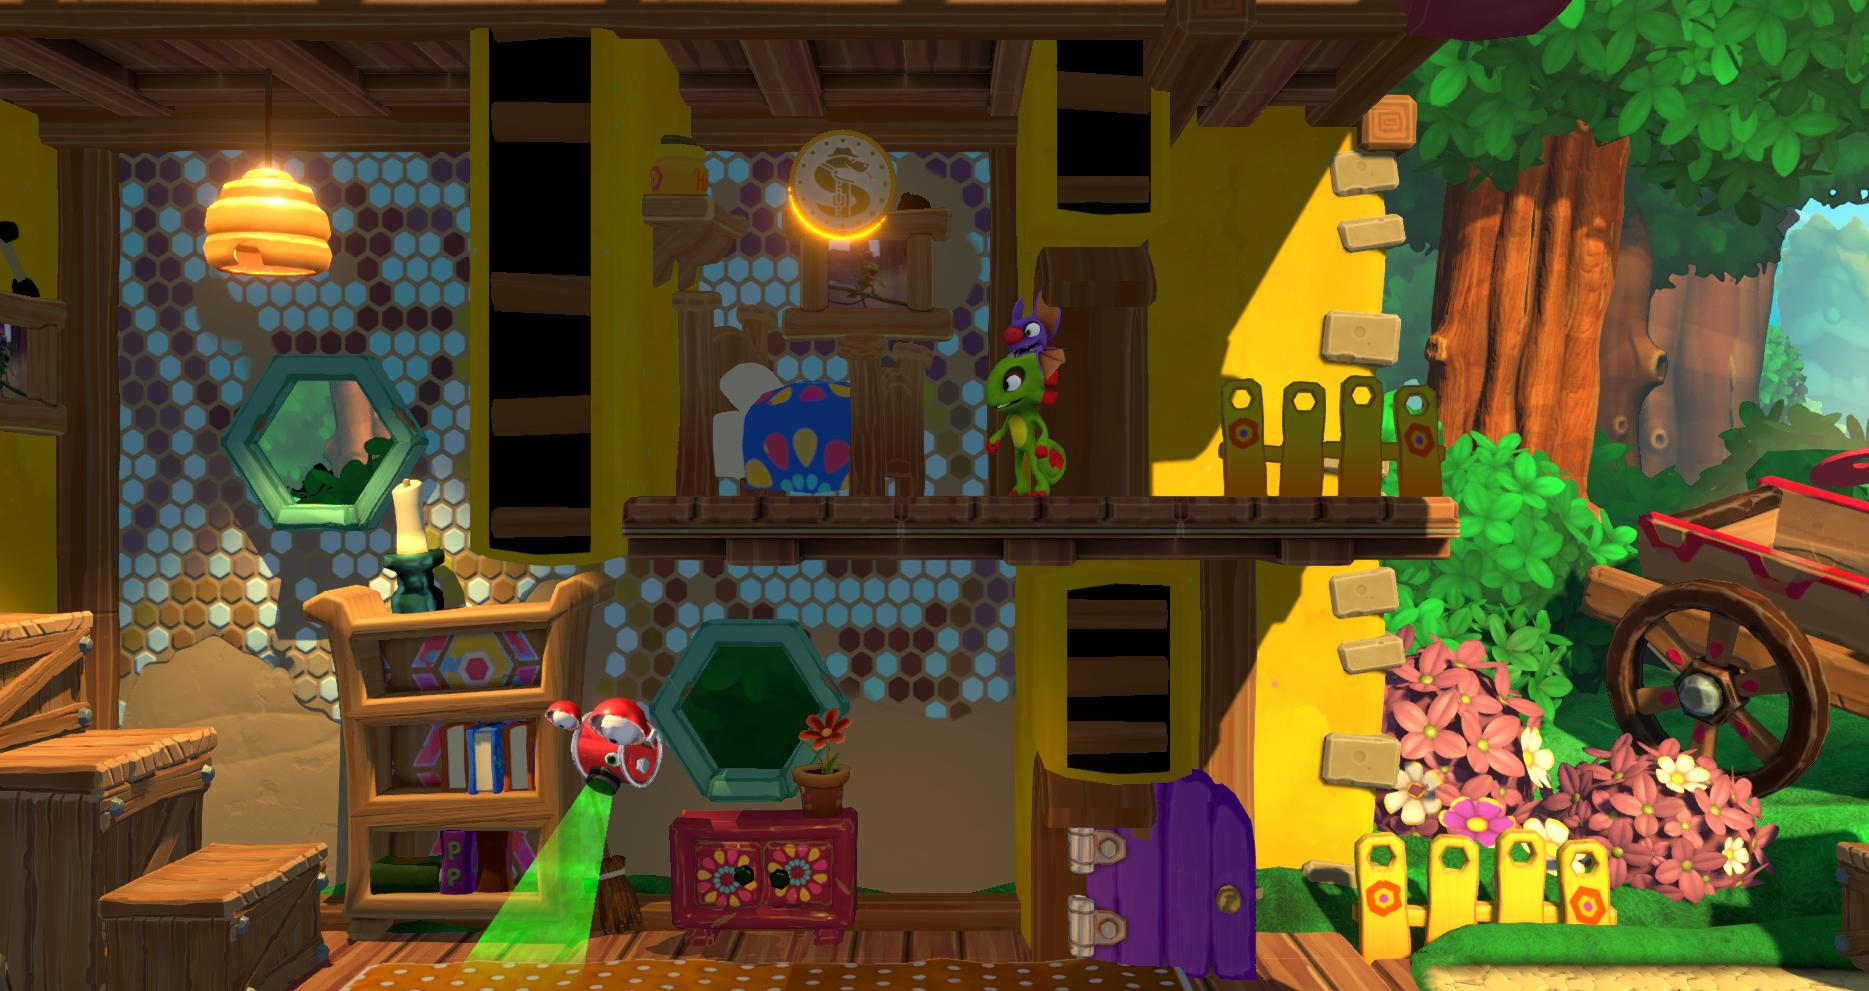 Image results for yooka laylee and the impossible lair